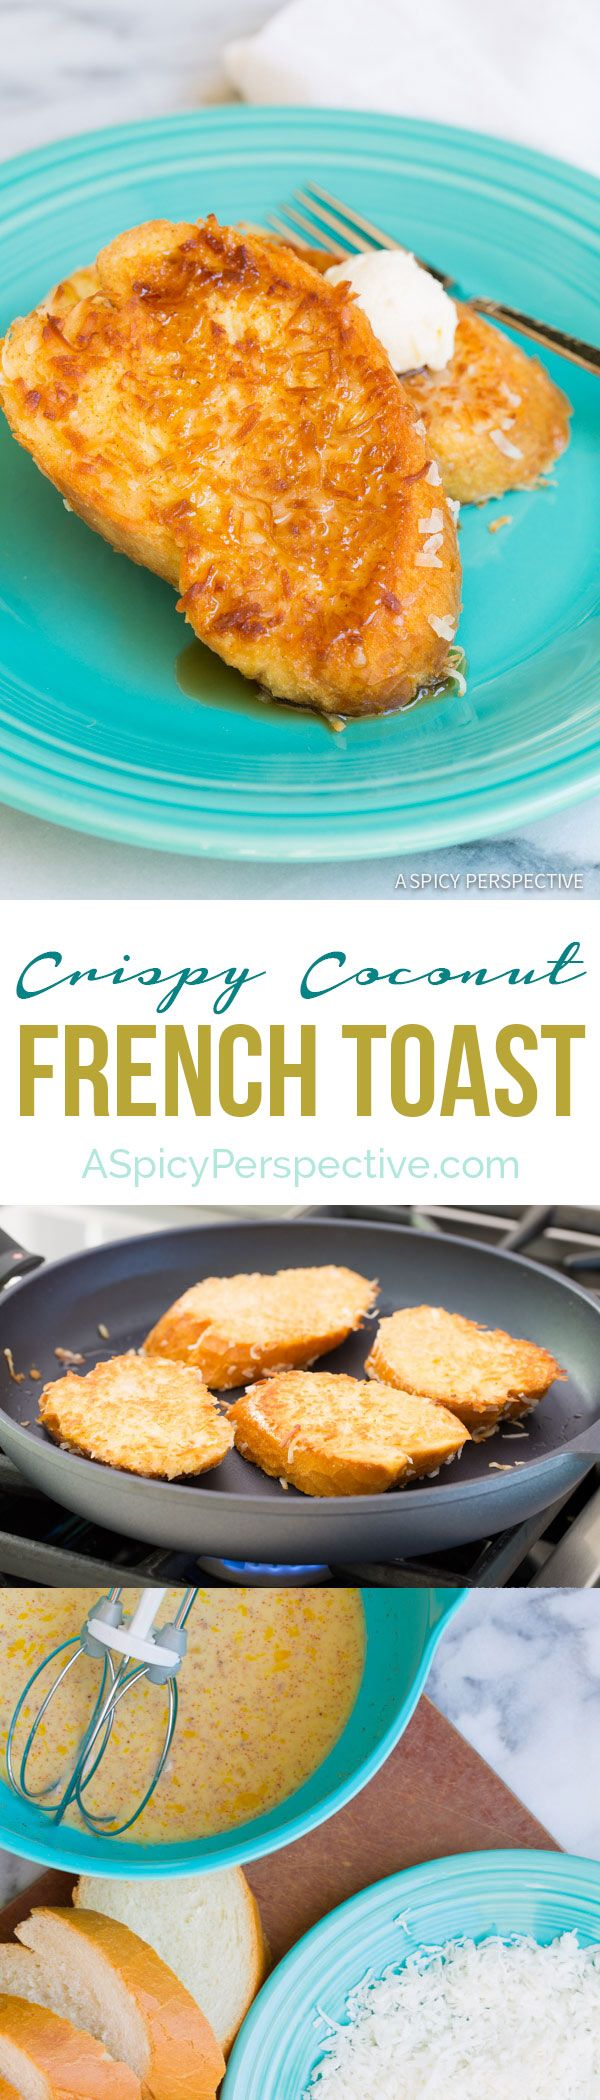 Best 25 healthy french toast ideas on pinterest baked french coconut french toast ccuart Images